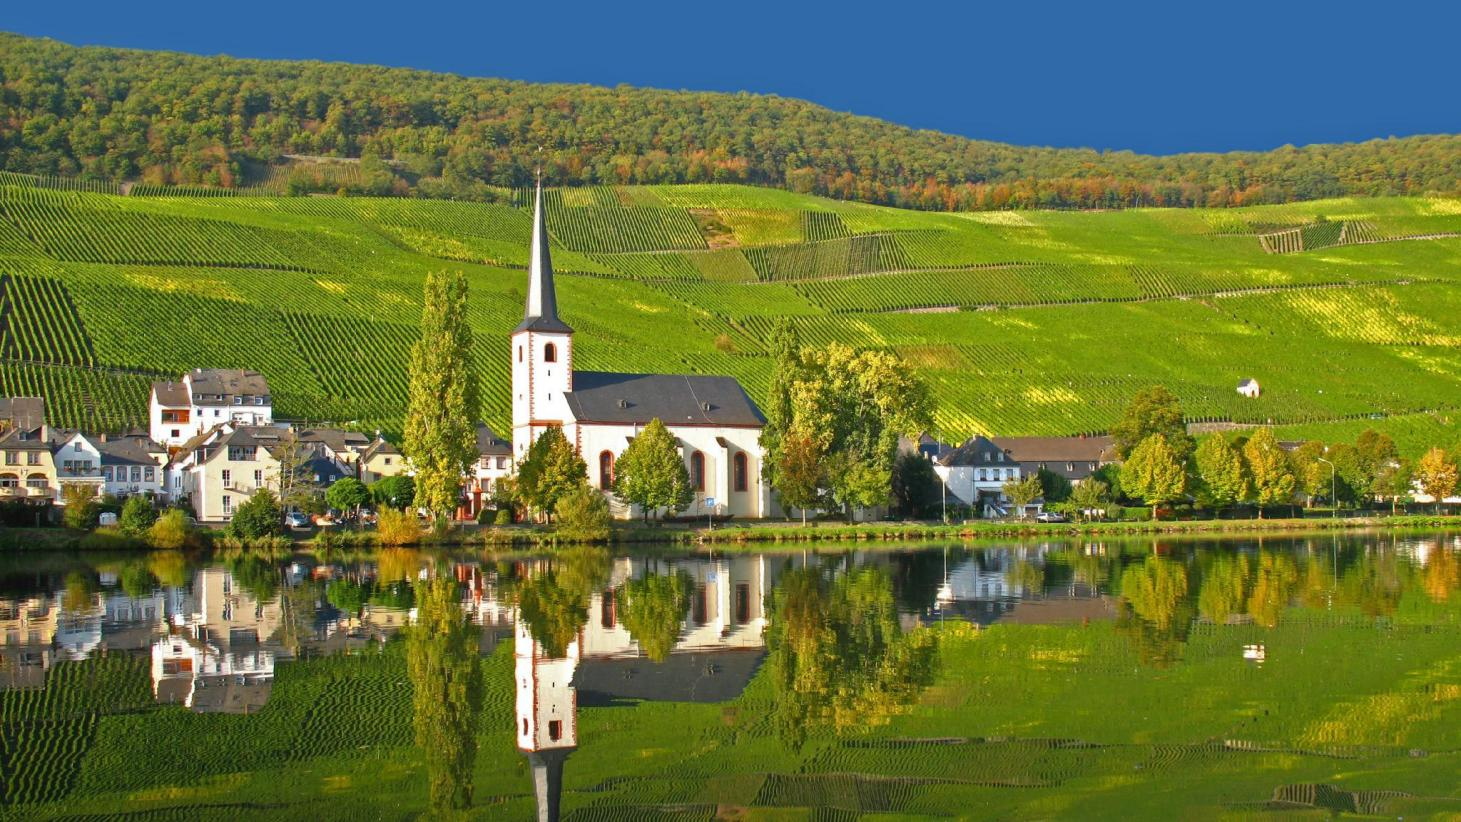 30 Best Piesport Hotels - Free Cancellation, 2021 Price Lists & Reviews of  the Best Hotels in Piesport, Germany